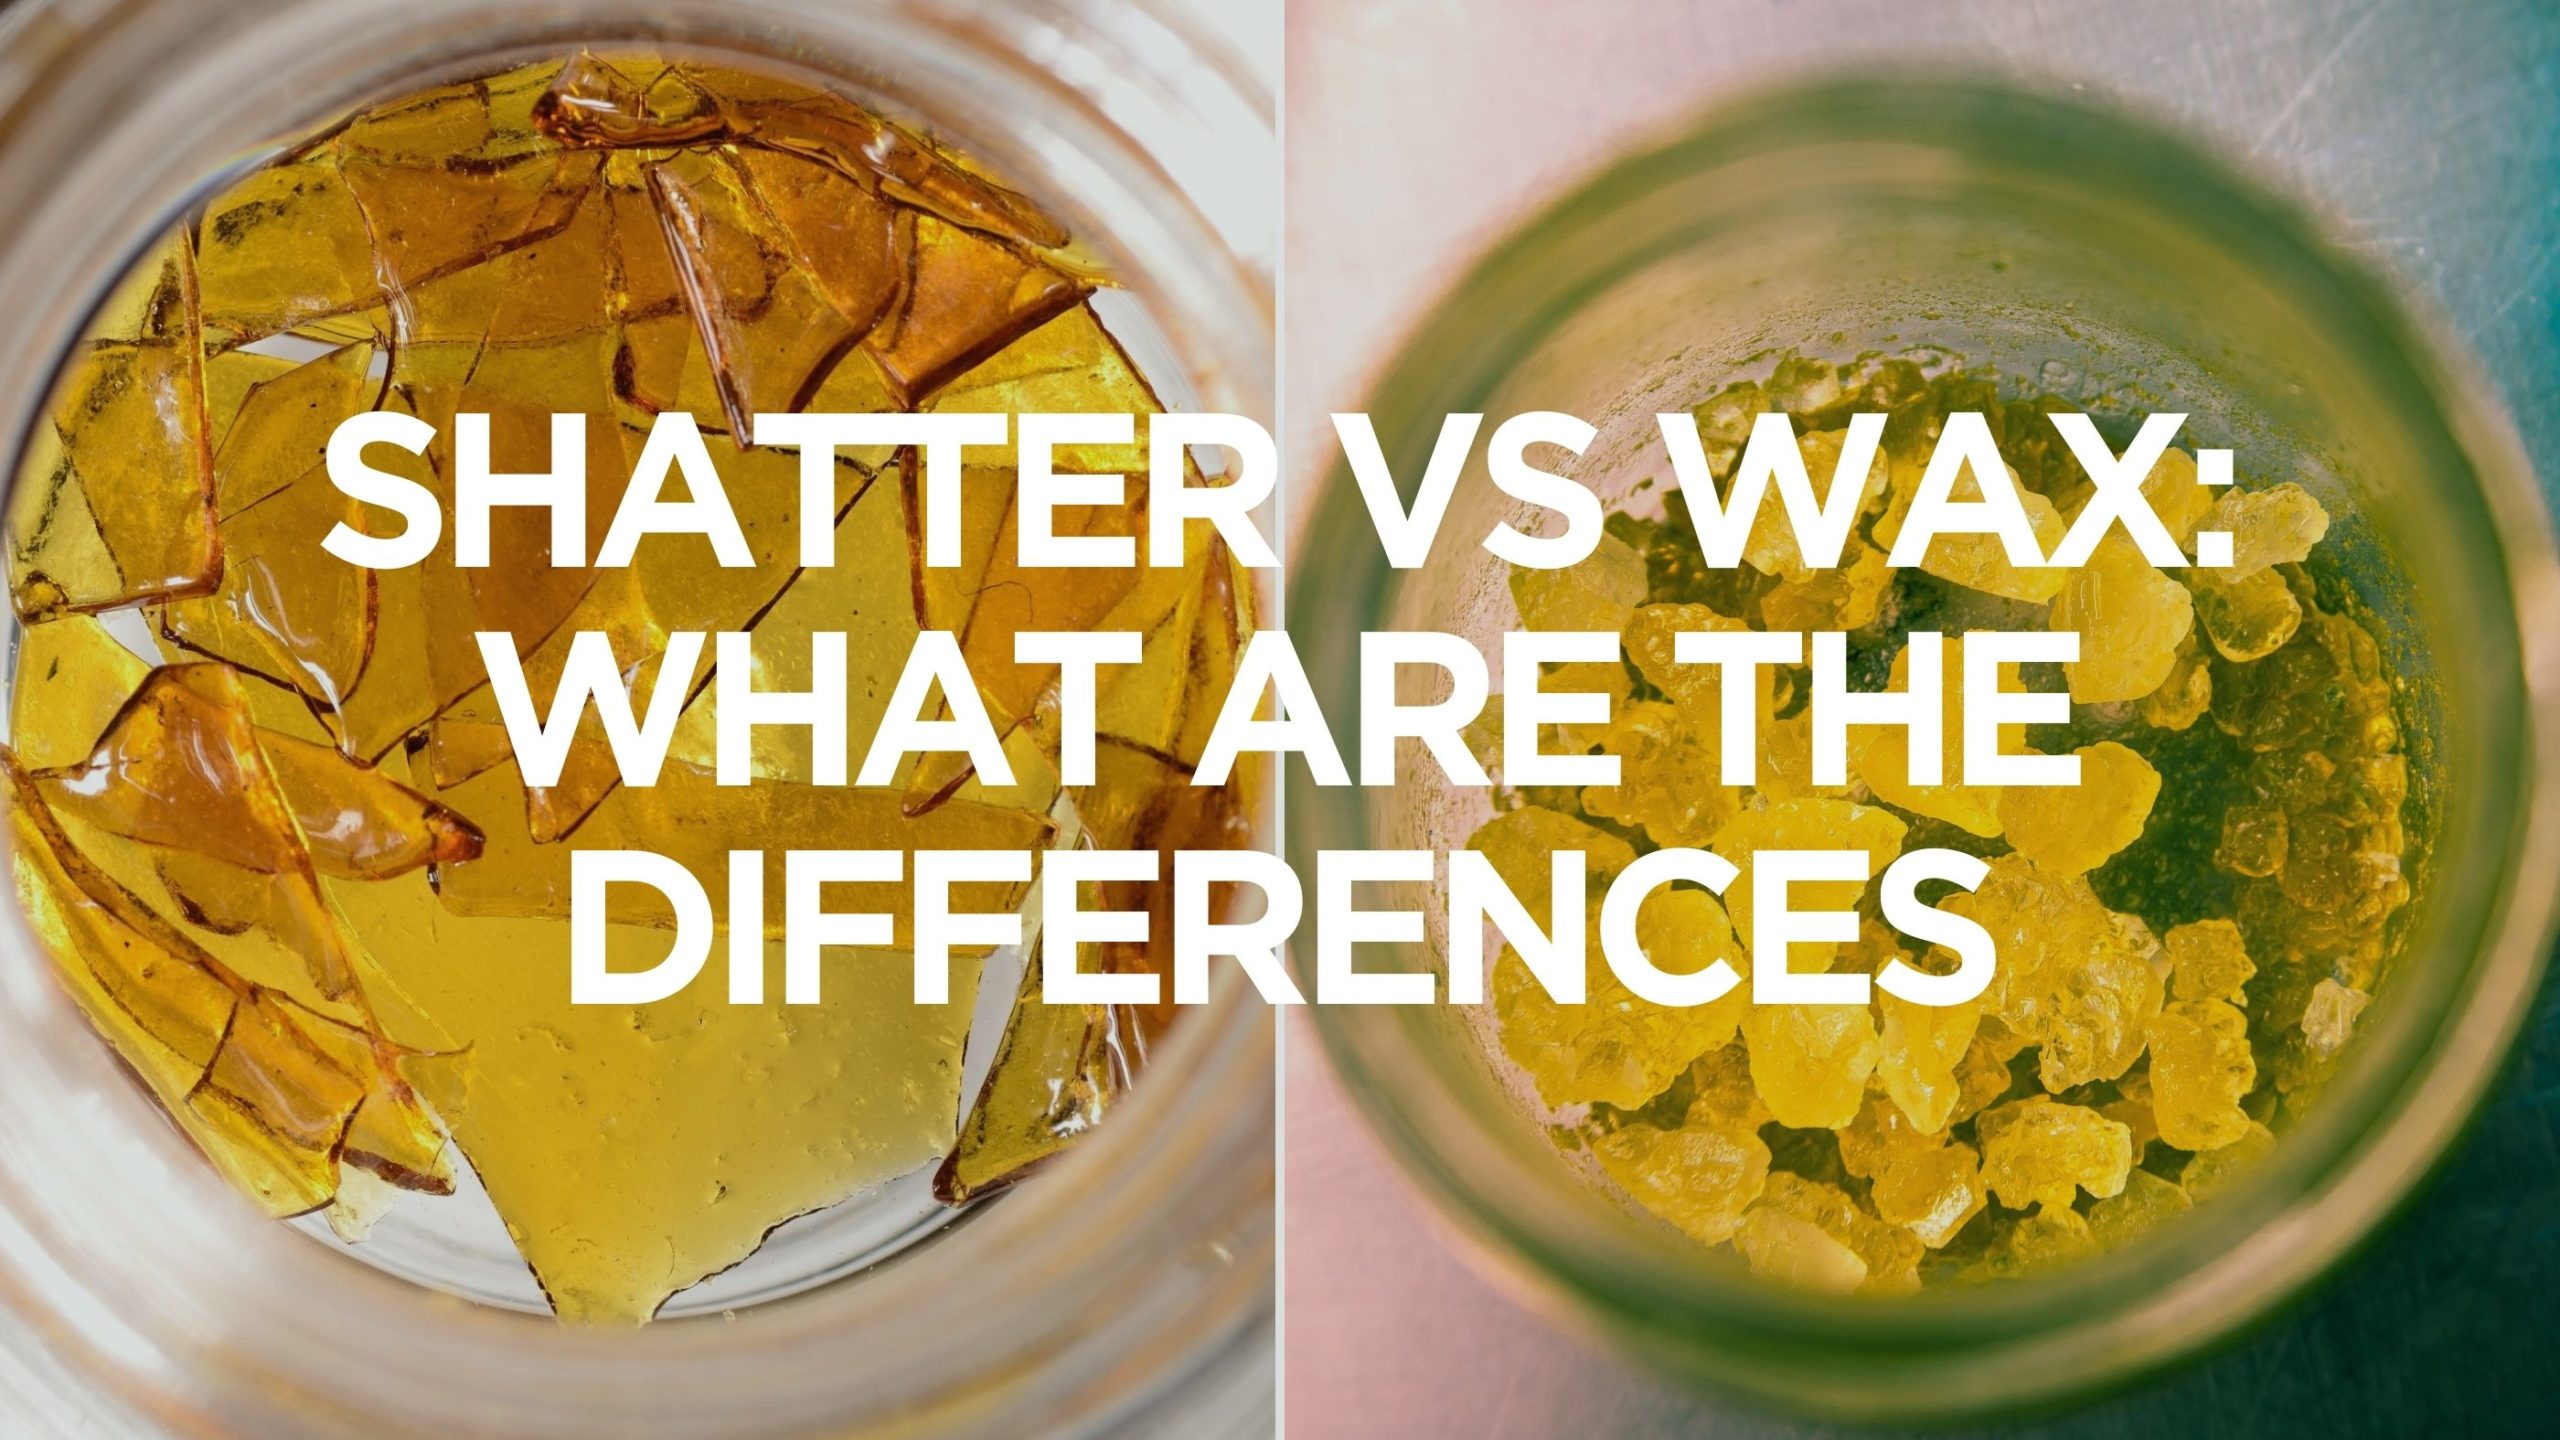 shatter-vs-wax-what-are-the-differences